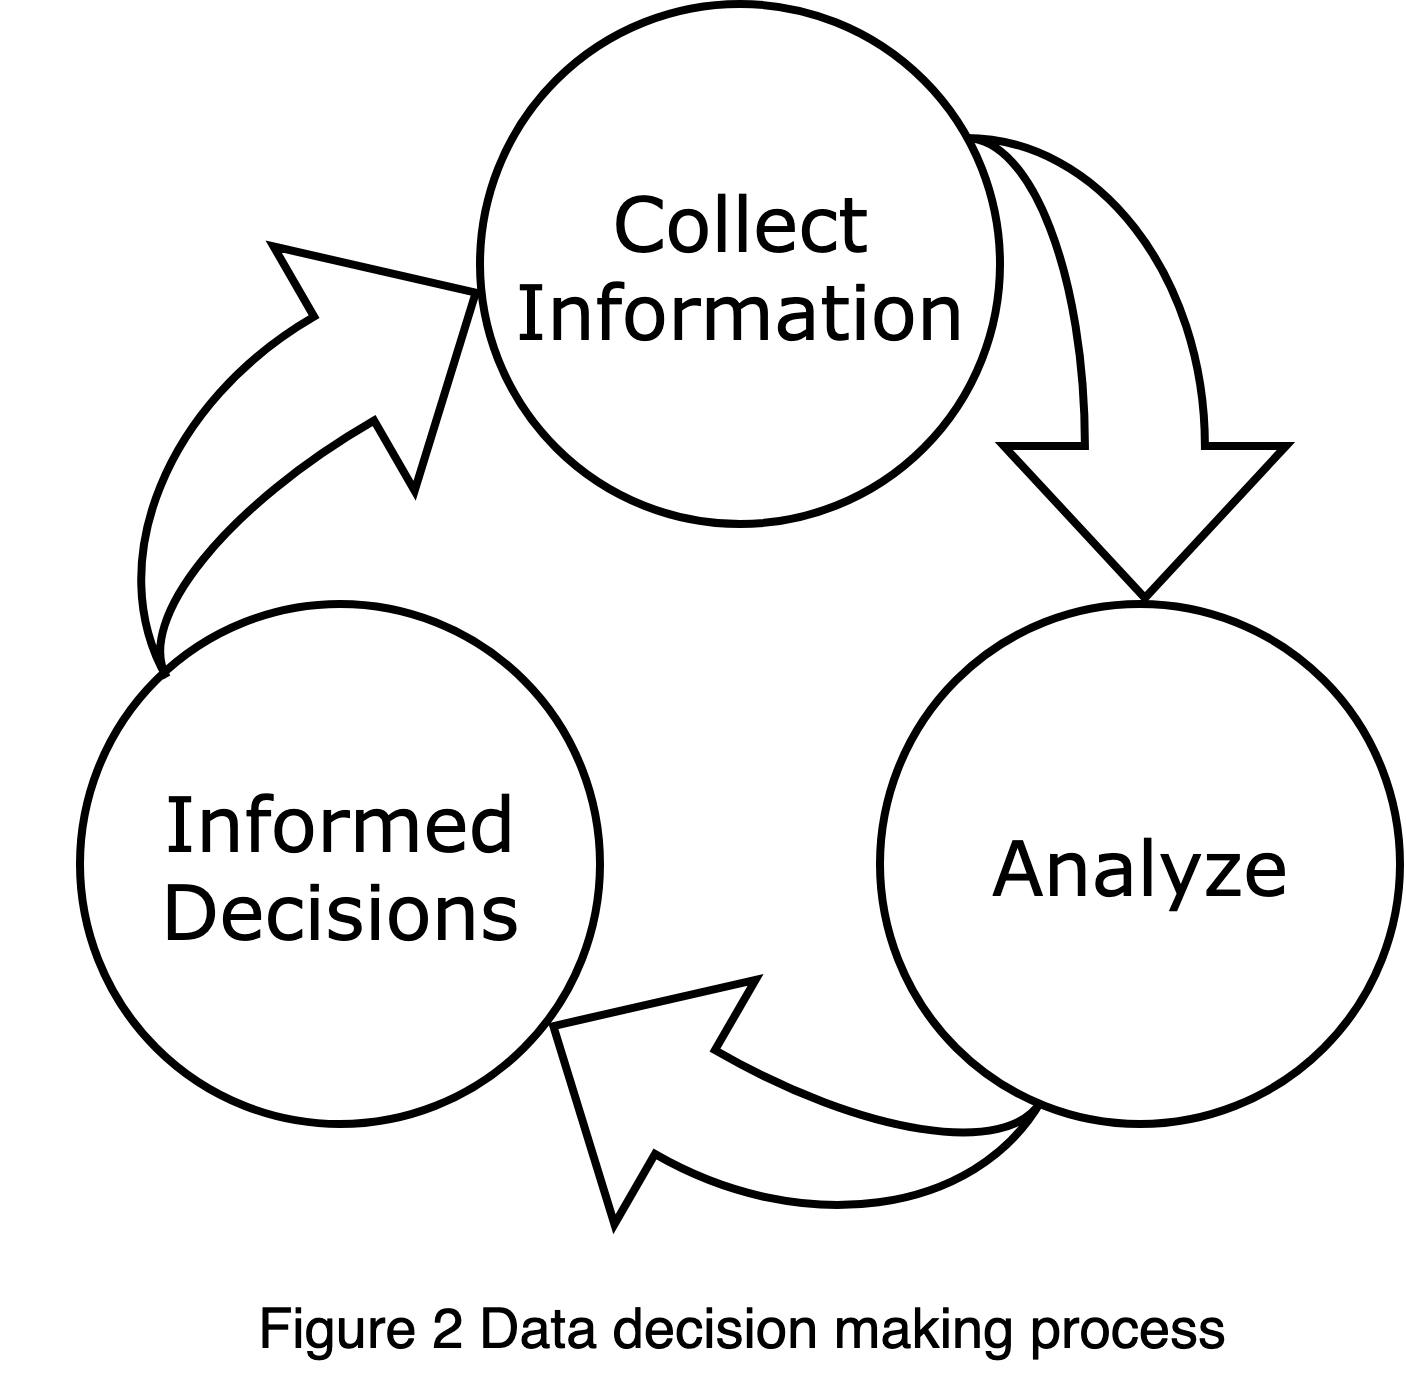 Figure of data decision making process described in text